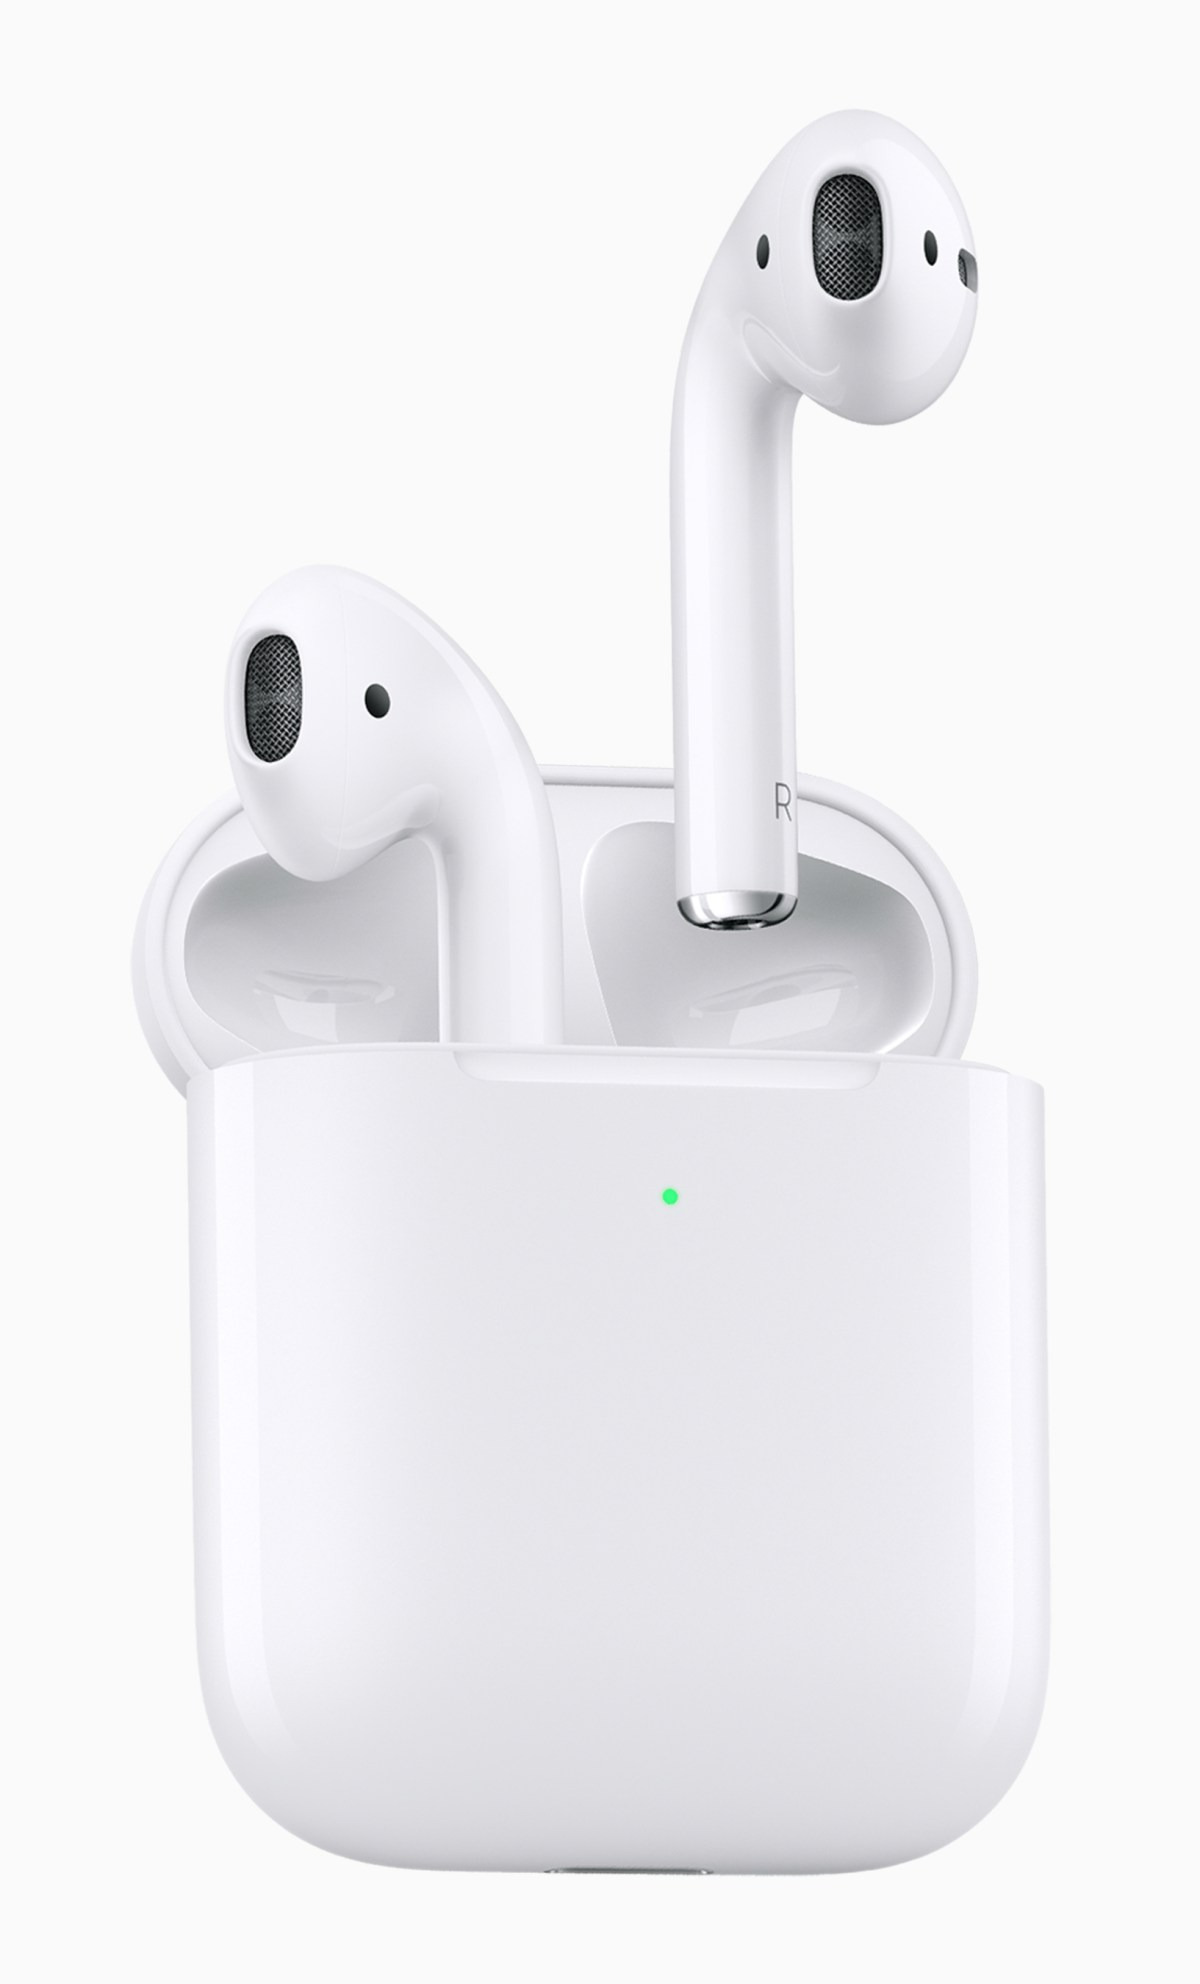 Apple announces new AirPods